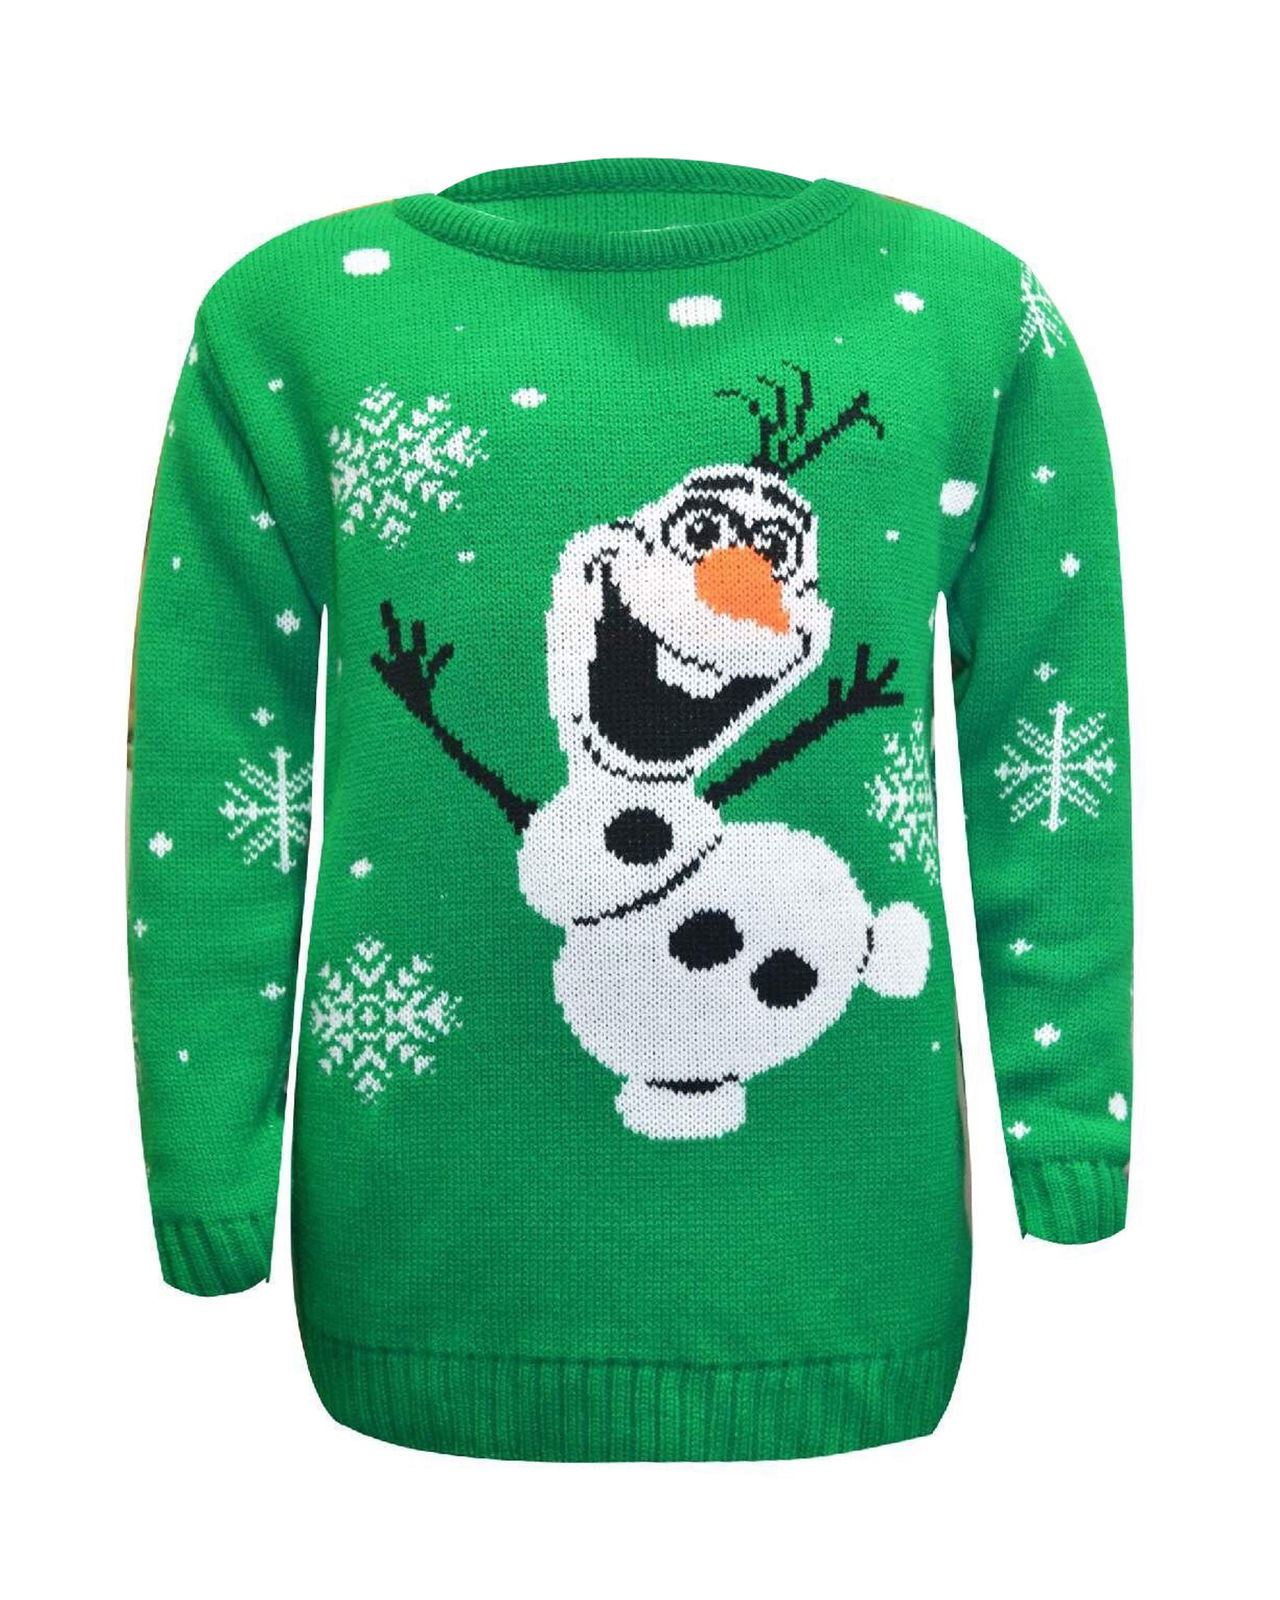 Kids Boy Girl Knitted Christmas Xmas Olaf Minion Chunky Knit Jumper Novelty T...